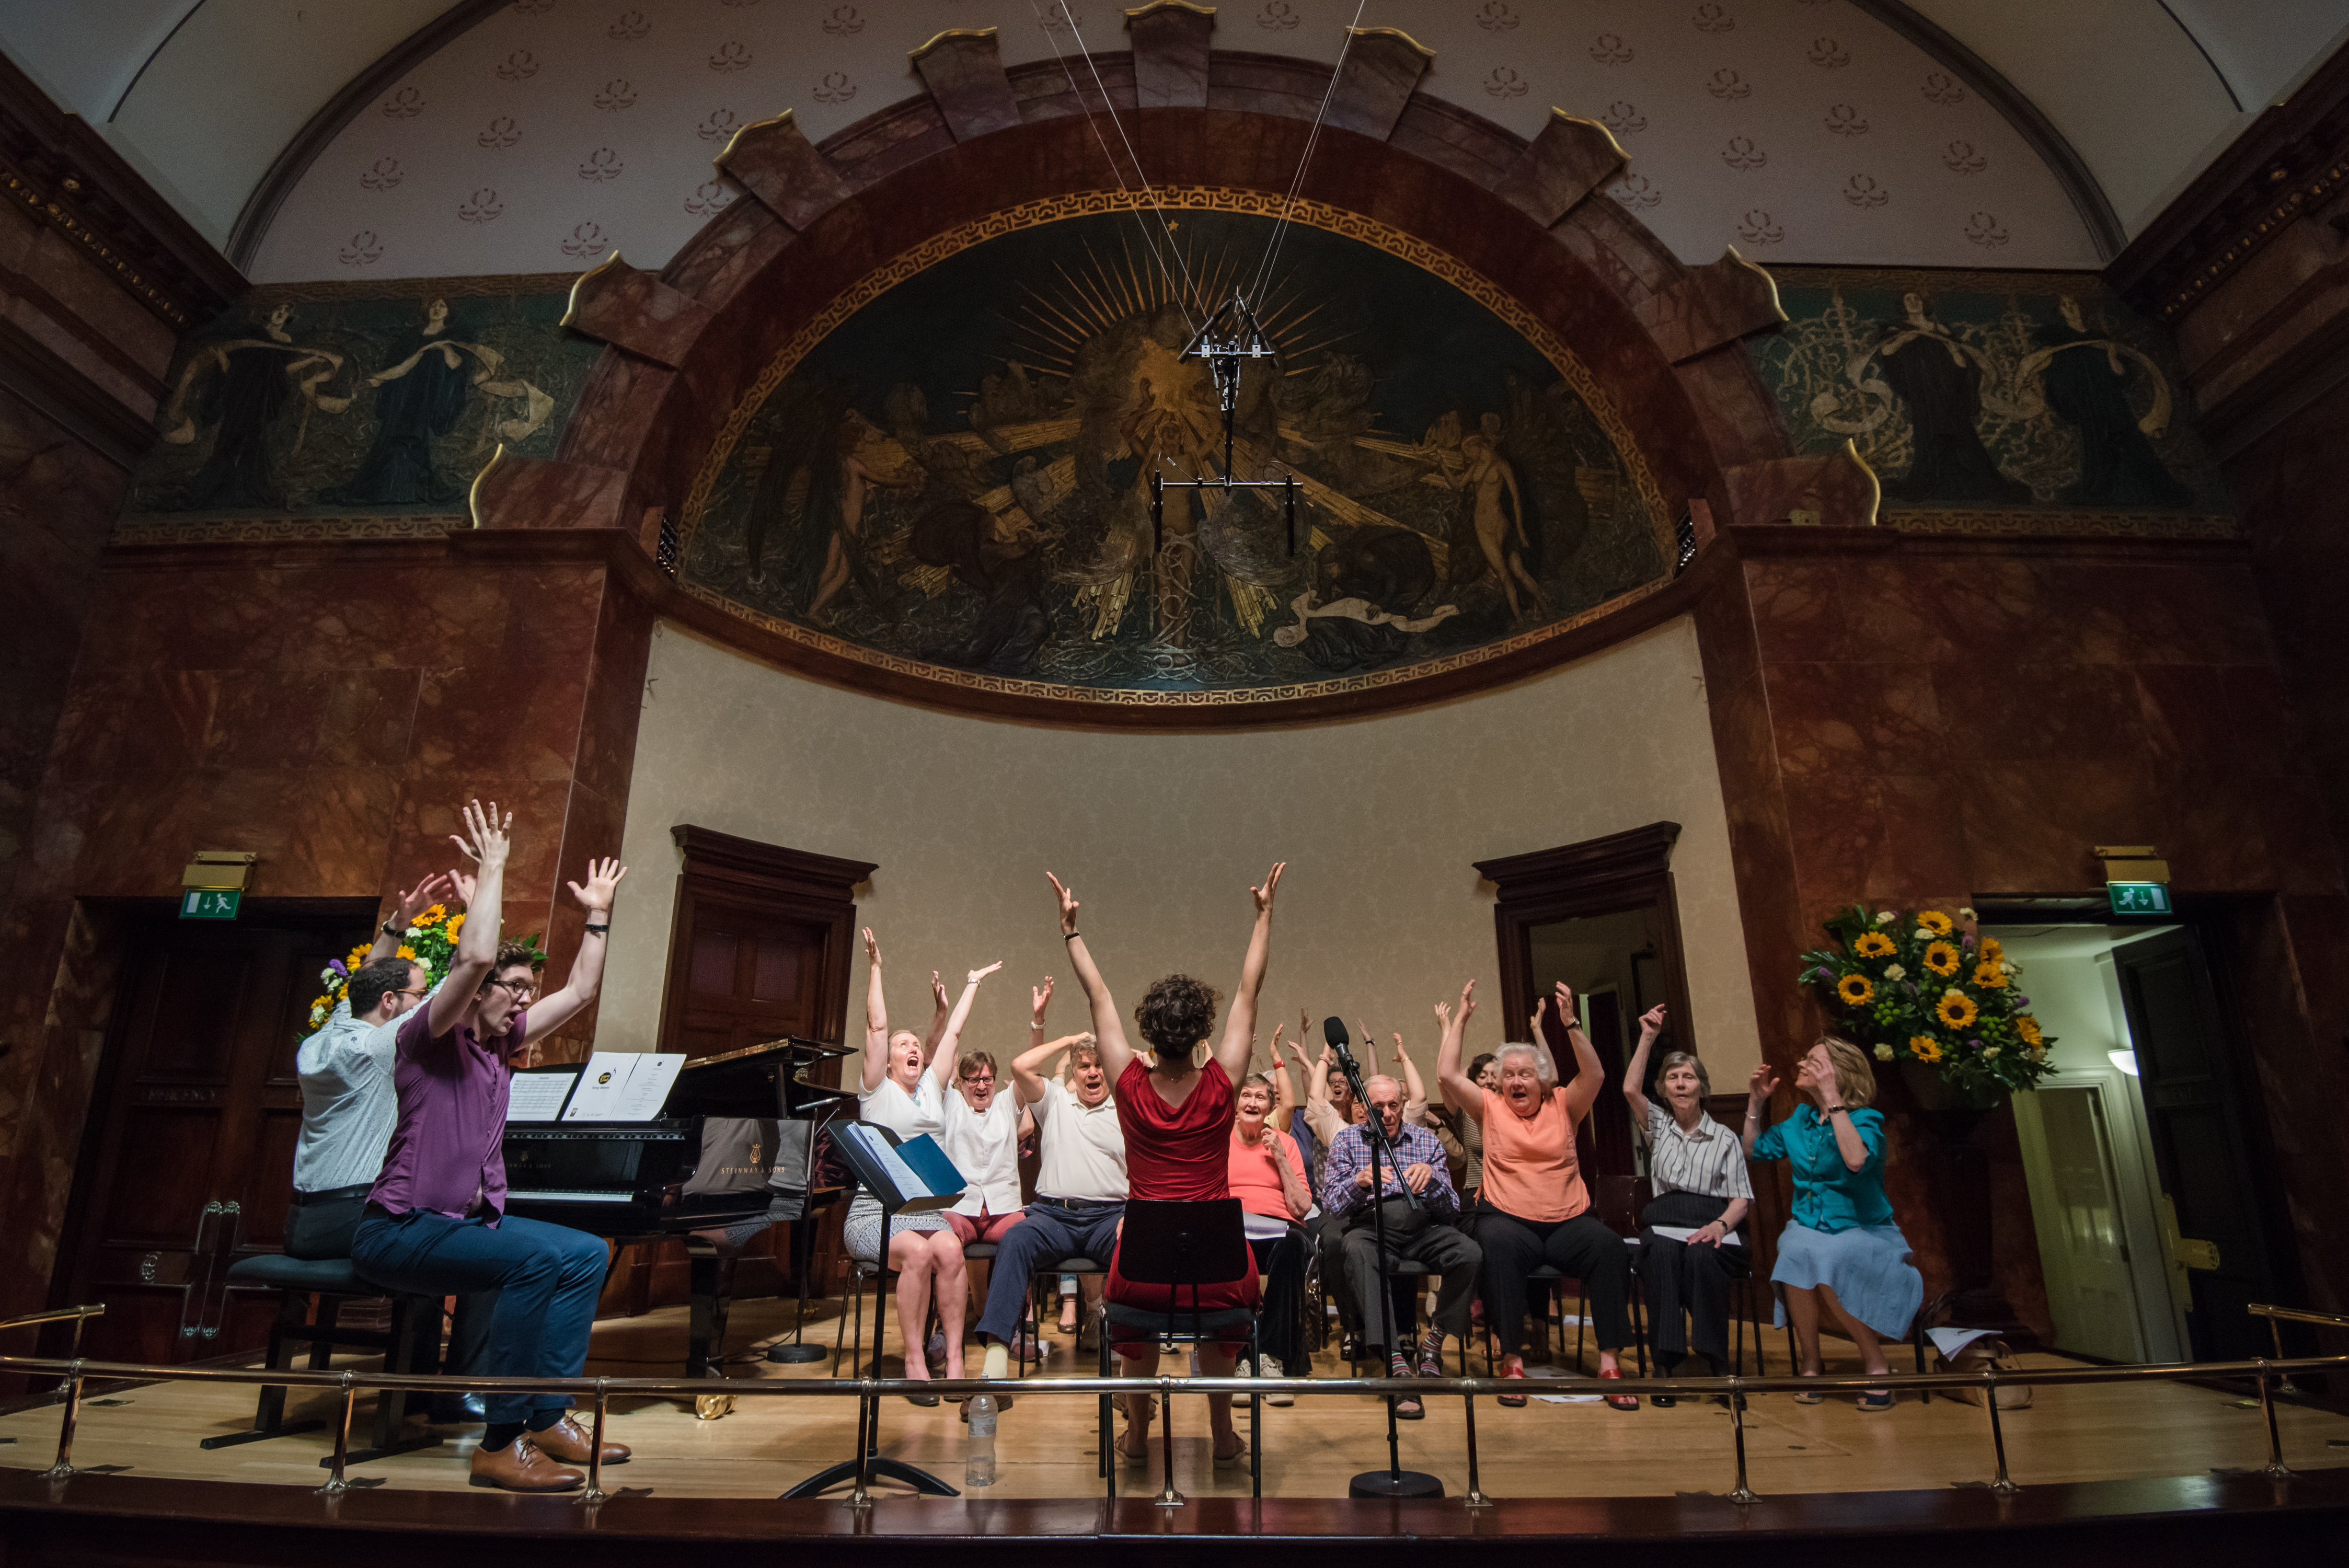 Photograph of the Singing With Friends choir group at Wigmore Hall